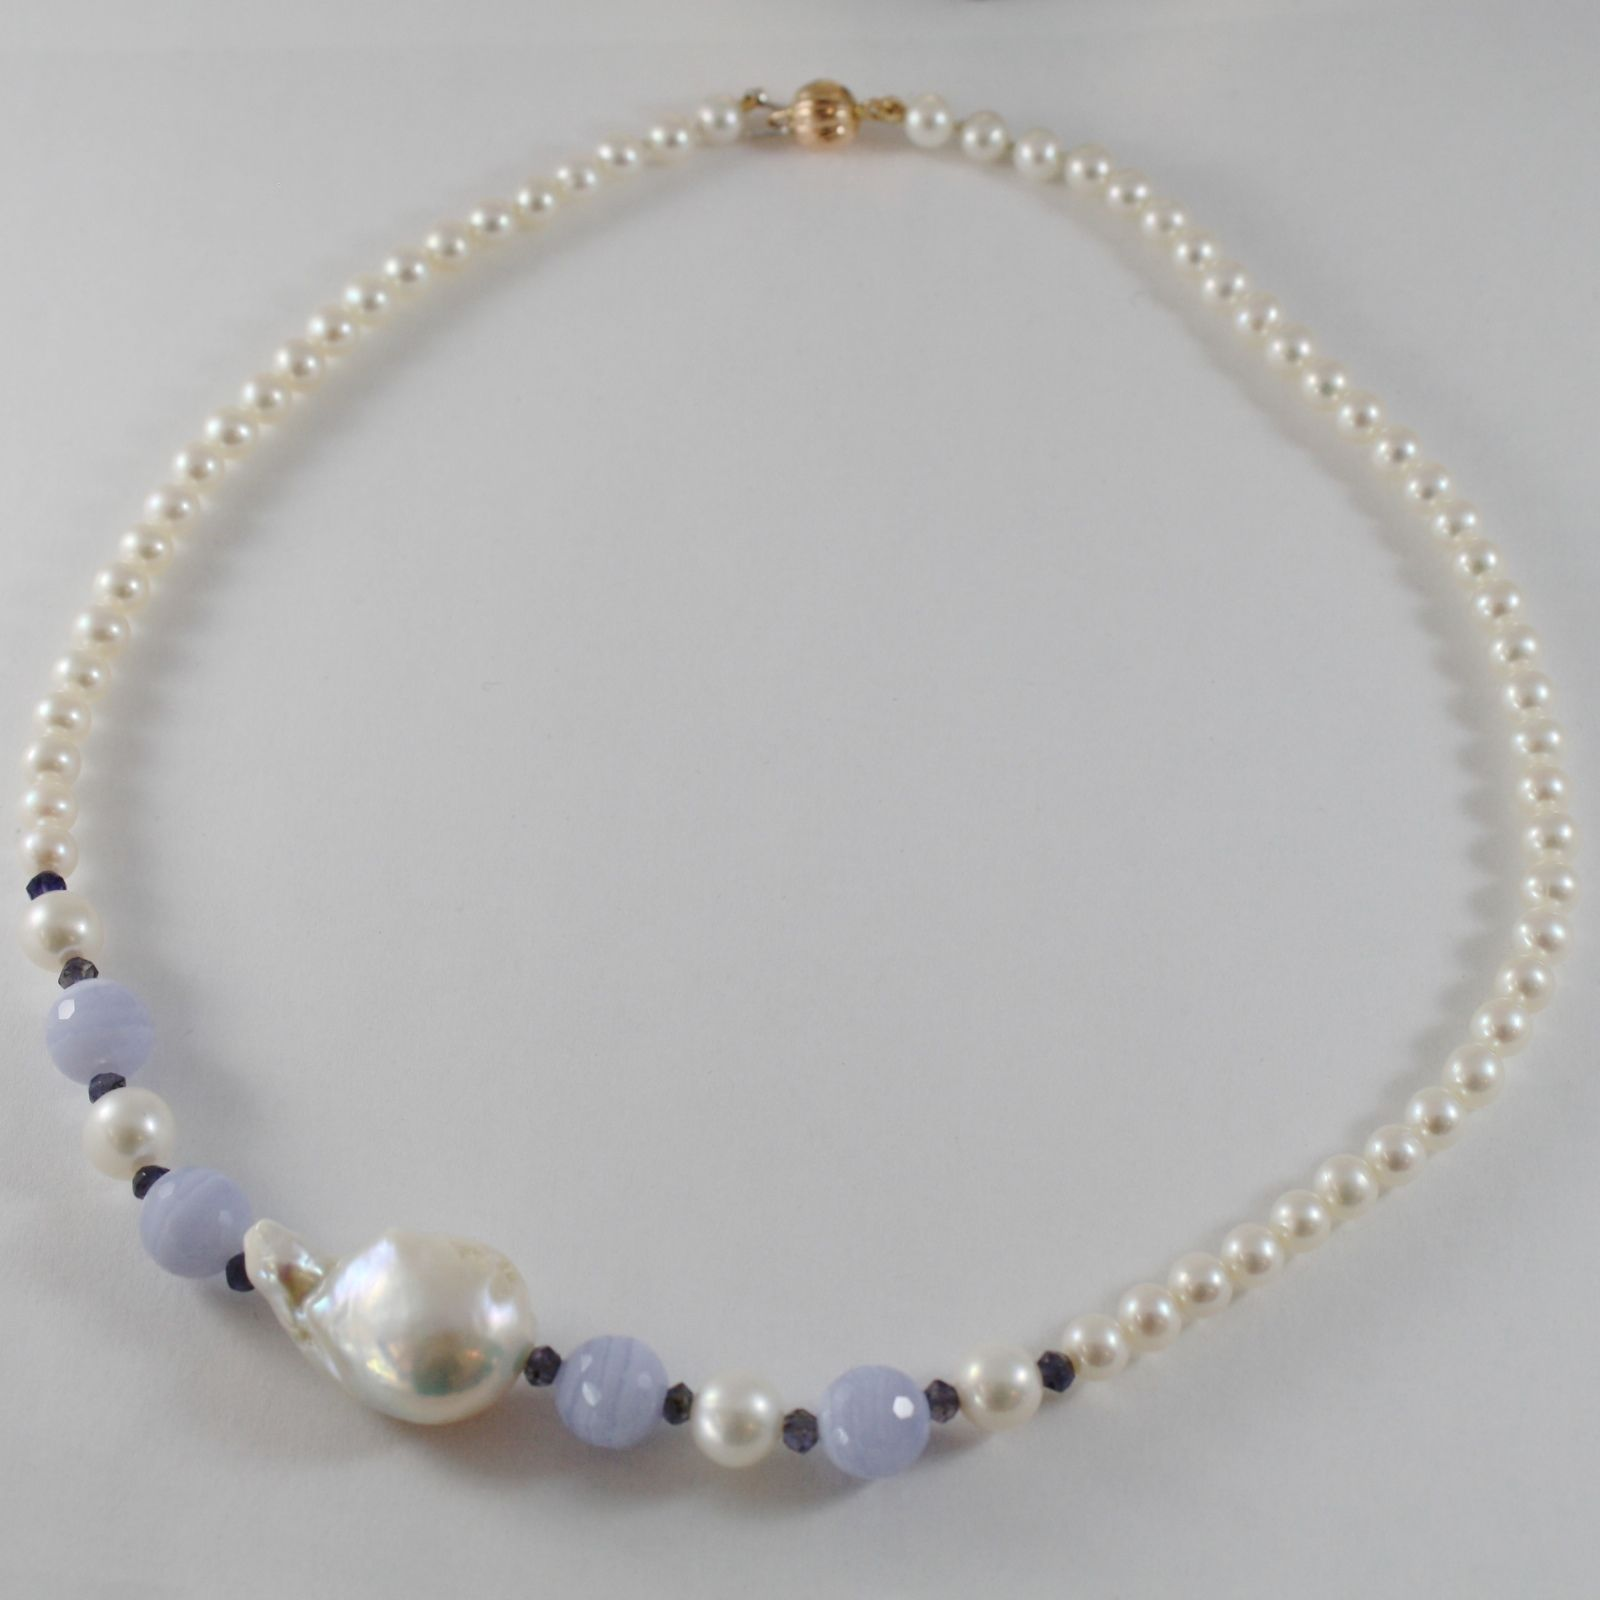 18K ROSE GOLD NECKLACE BIG DROP BAROQUE PEARL 28 MM & CHALCEDONY, MADE IN ITALY